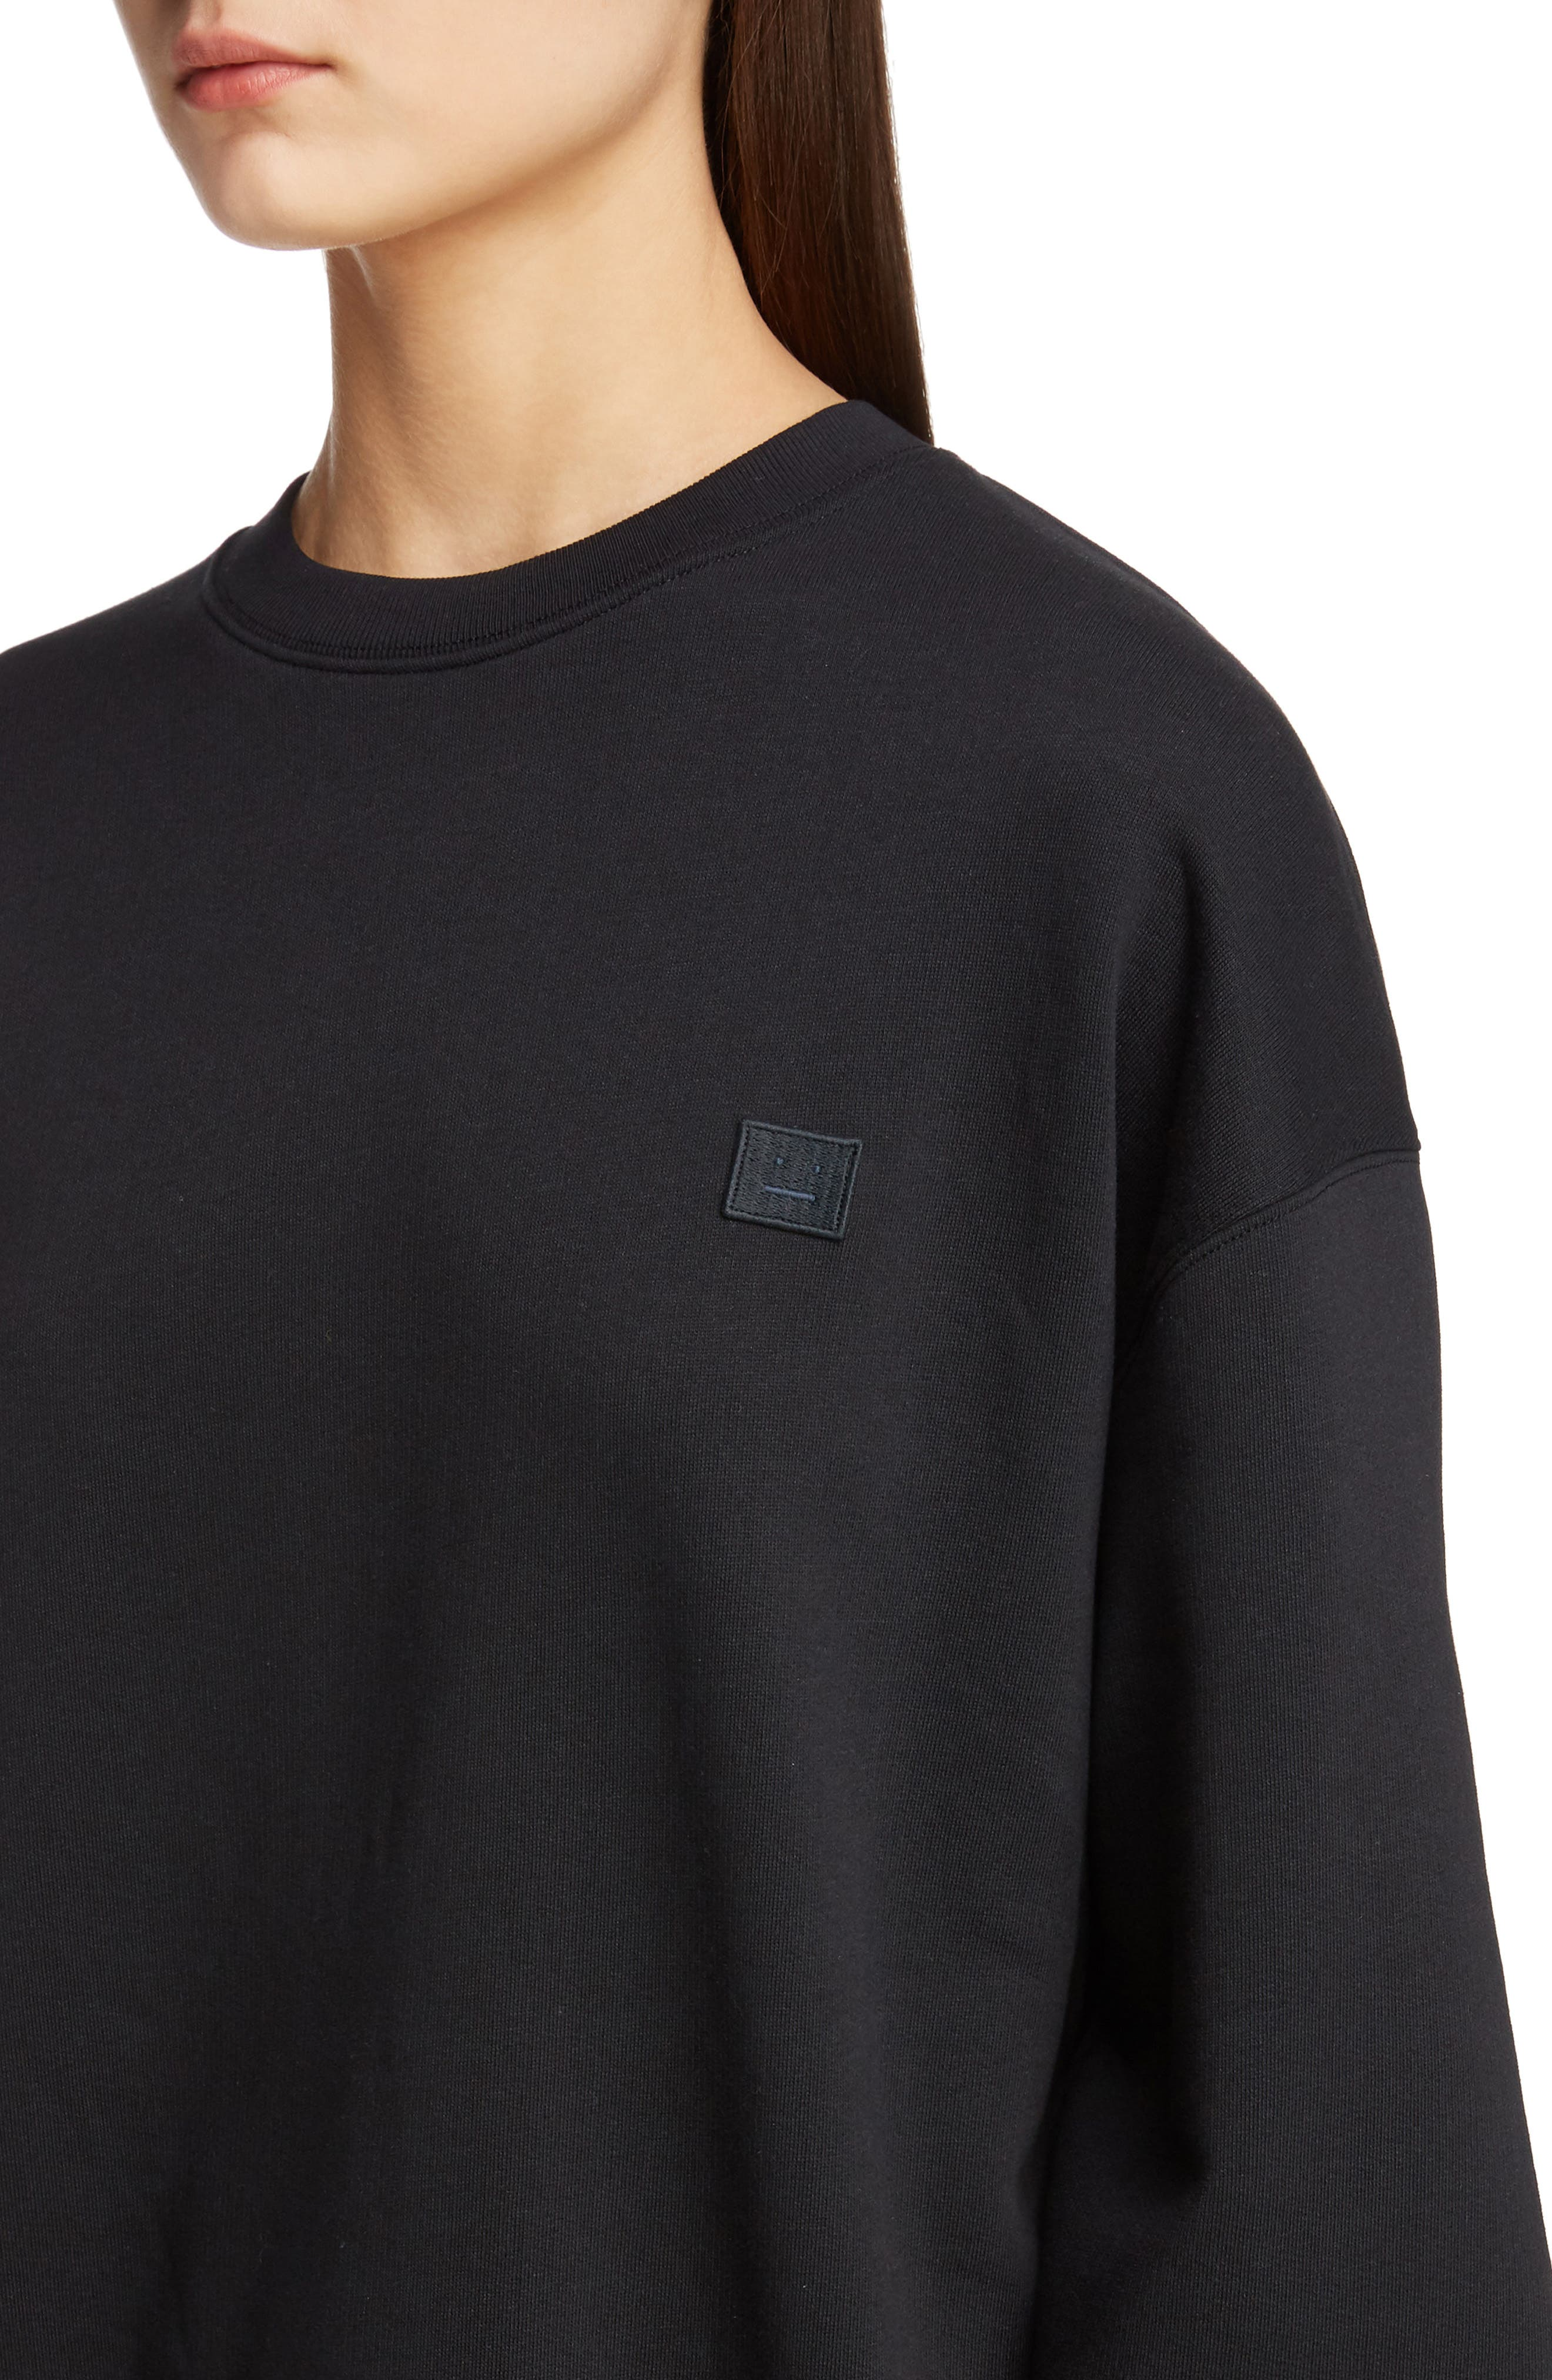 ACNE STUDIOS,                             Forba Face Sweatshirt,                             Alternate thumbnail 4, color,                             BLACK